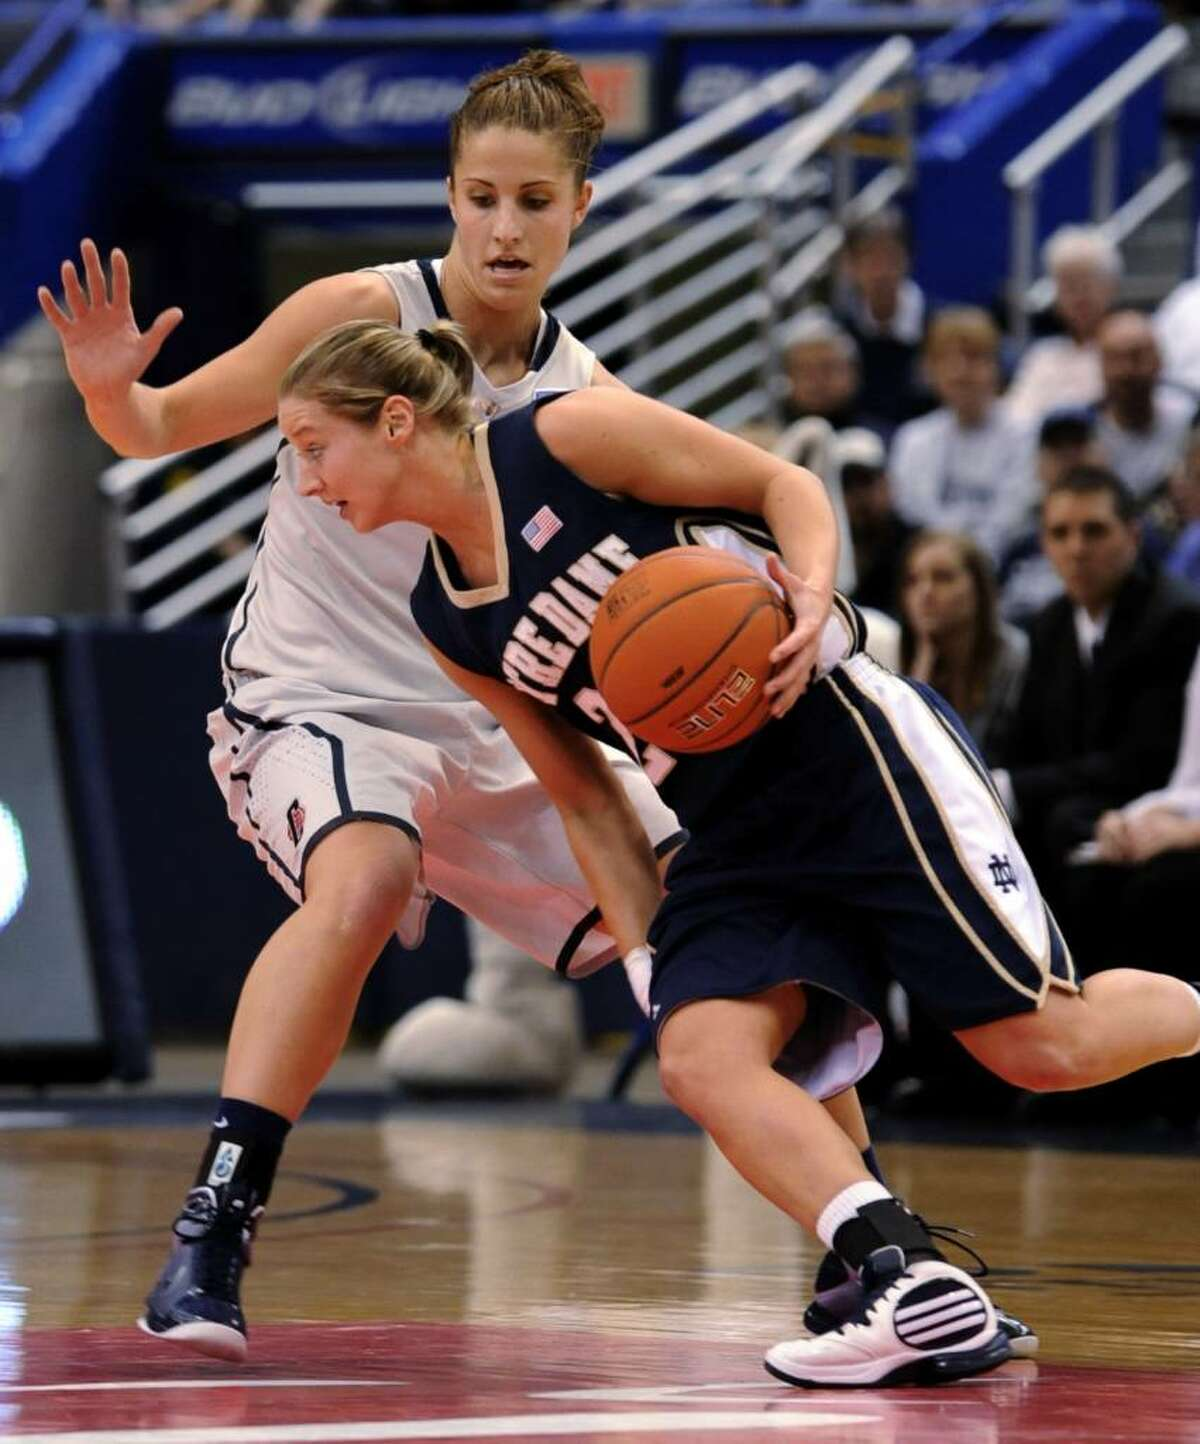 Notre Dame's Melissa Lechlitner takes the ball past Connecticut's Caroline Doty during the first half of an NCAA college basketball game in the semifinals of the Big East tournament in Hartford, Conn., Monday, March 8, 2010. (AP Photo/Bob Child)